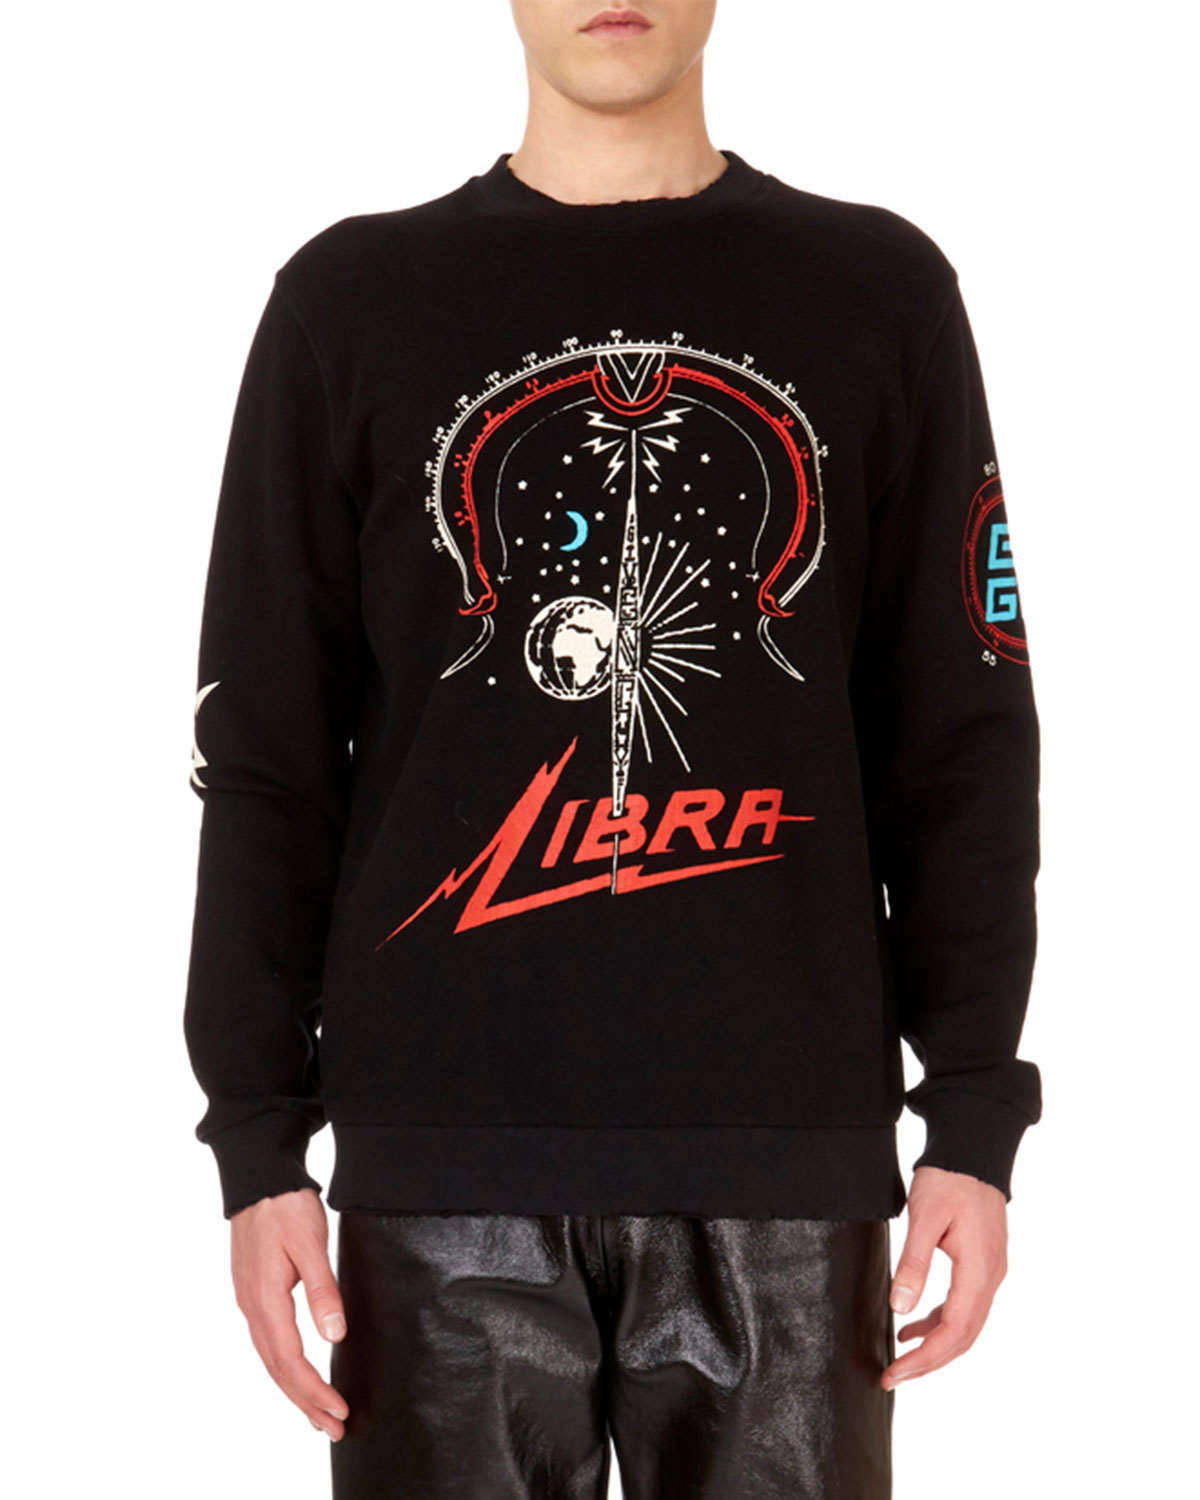 Men's Libra-Zodiac Crewneck Graphic Sweatshirt